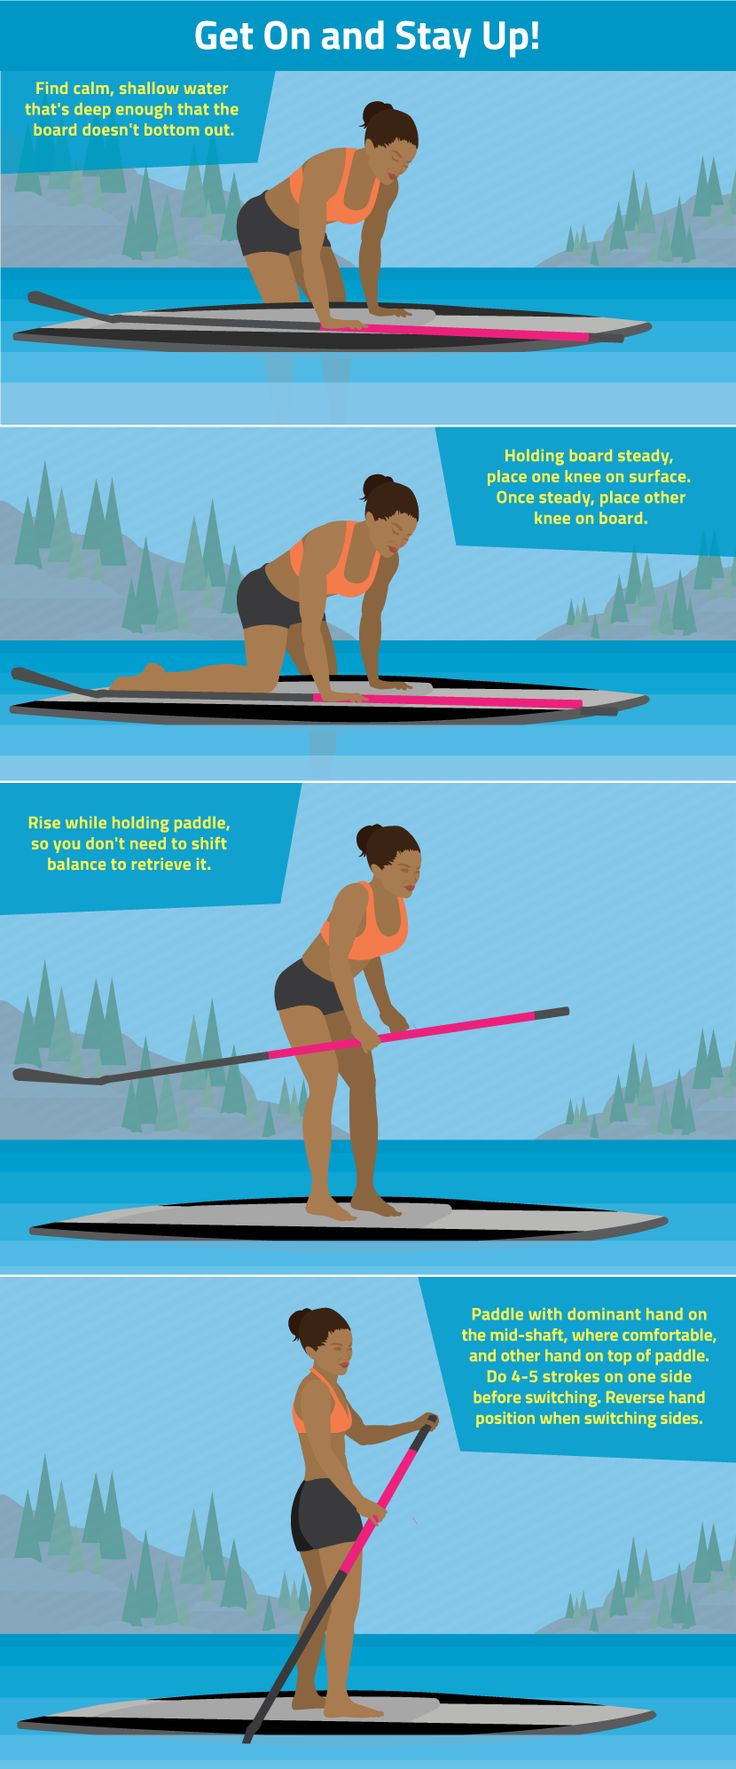 We protect and support Paddle Board Yoga Instructors! https://alternativebalance.net/paddle-board-yoga-insurance